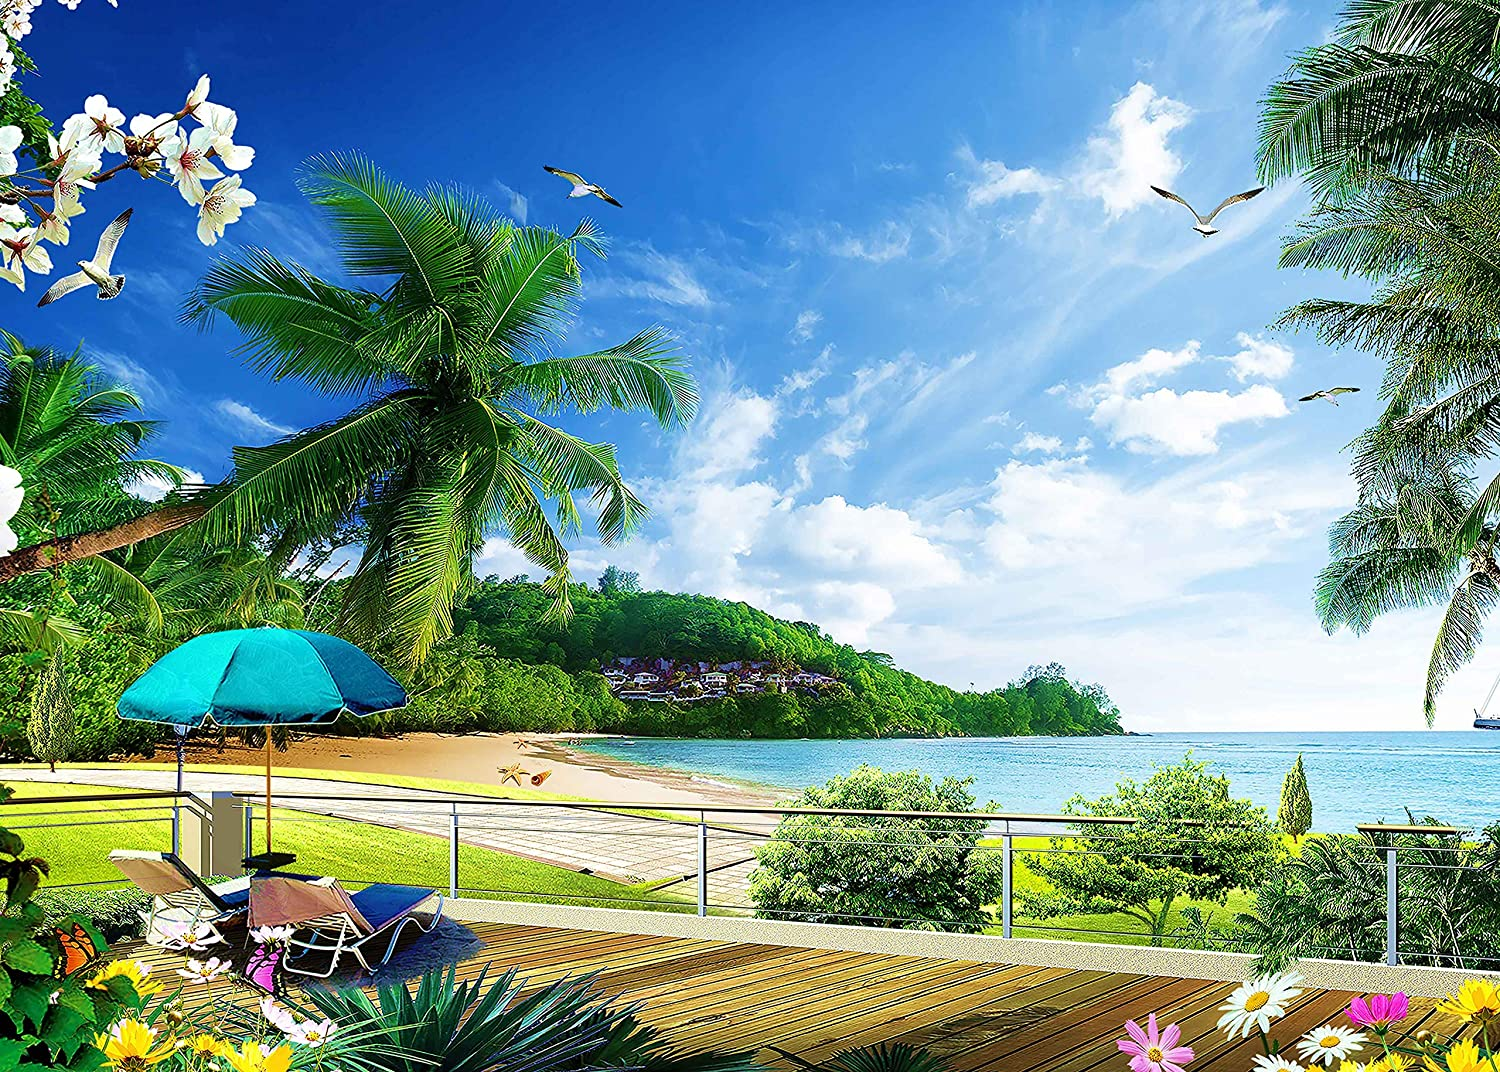 7x5ft Seaside Backdrop Beach Party Photography Background Natural Scenery Summer Holiday Photo Shoot Props YouTube Backdrop LSVV191